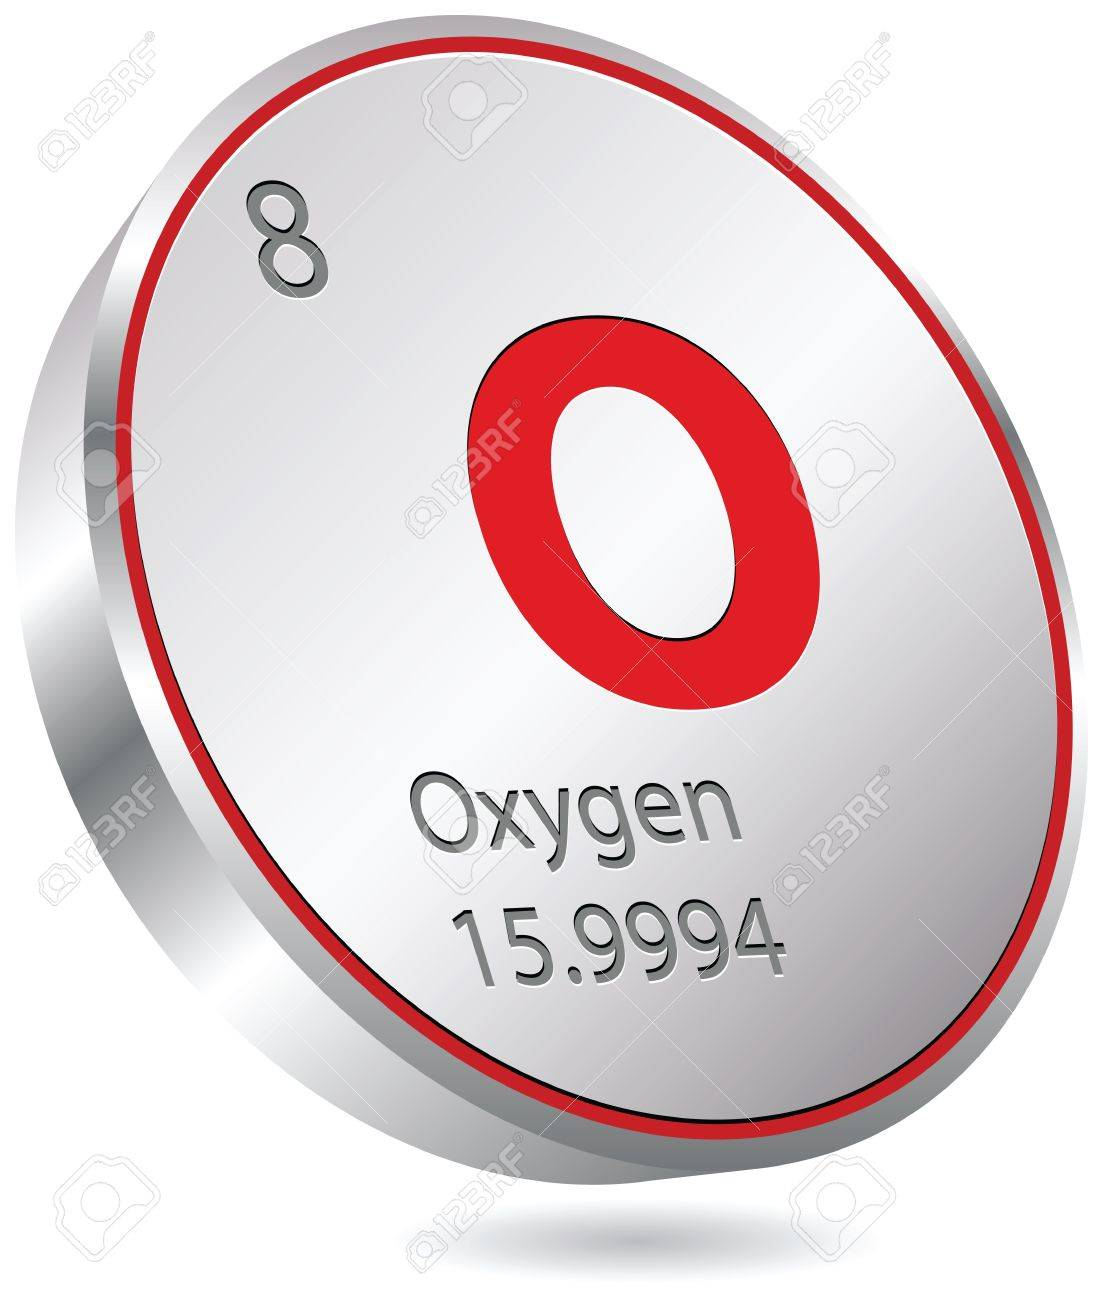 Oxygen element royalty free cliparts vectors and stock oxygen element stock vector 21156869 buycottarizona Choice Image